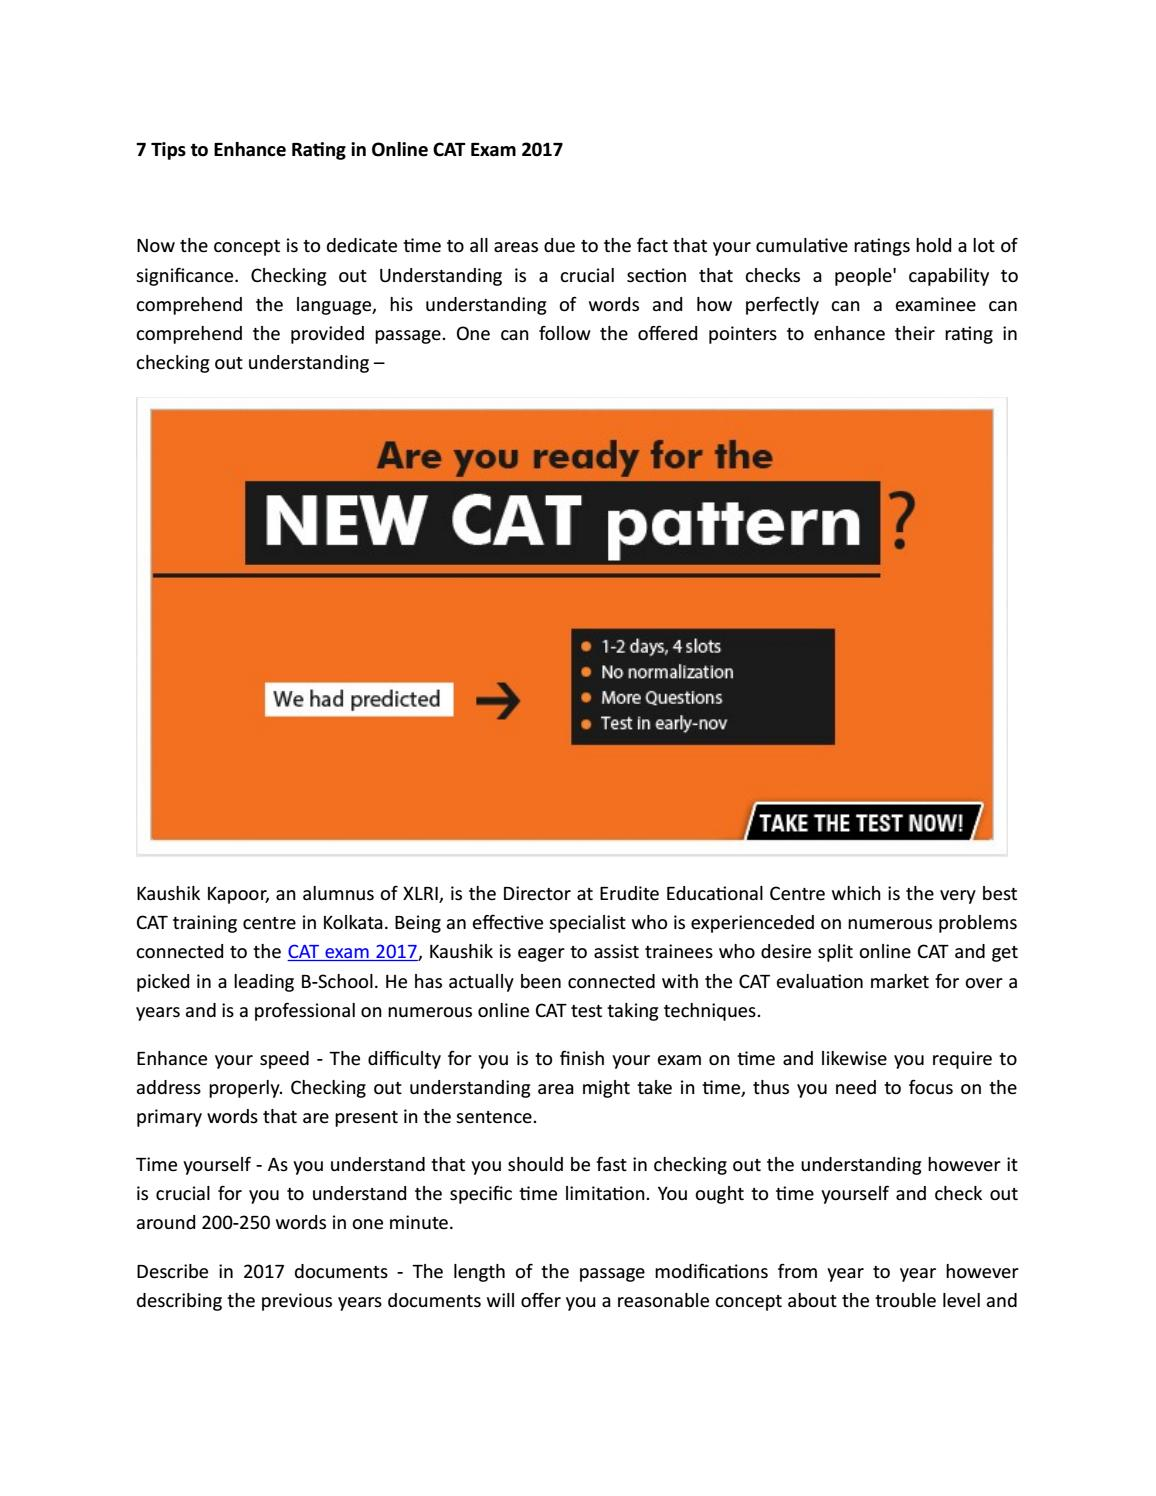 7 tips to enhance rating in online cat exam 2017 by College Guide